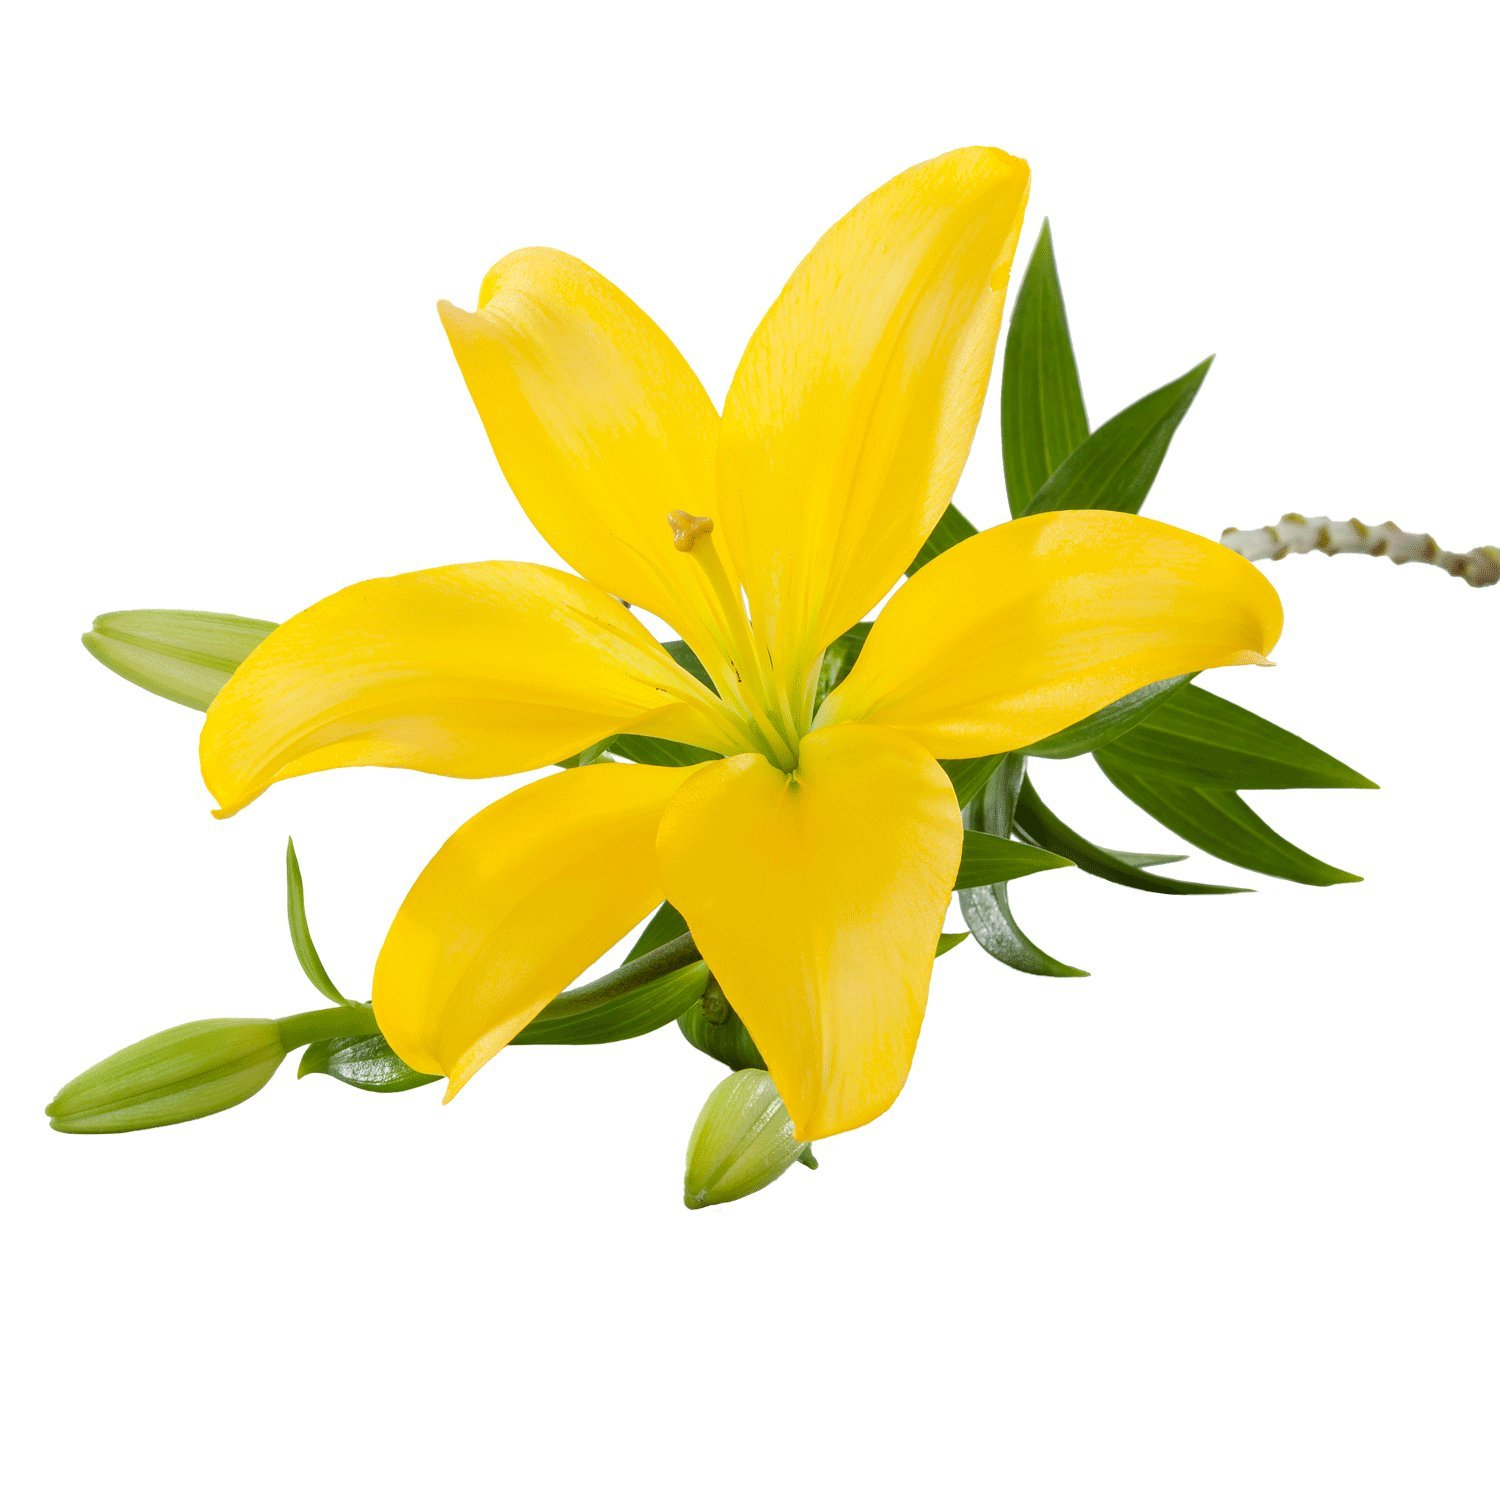 Asiatic Lilies | Yellow - 20 Stem Count by Flower Farm Shop